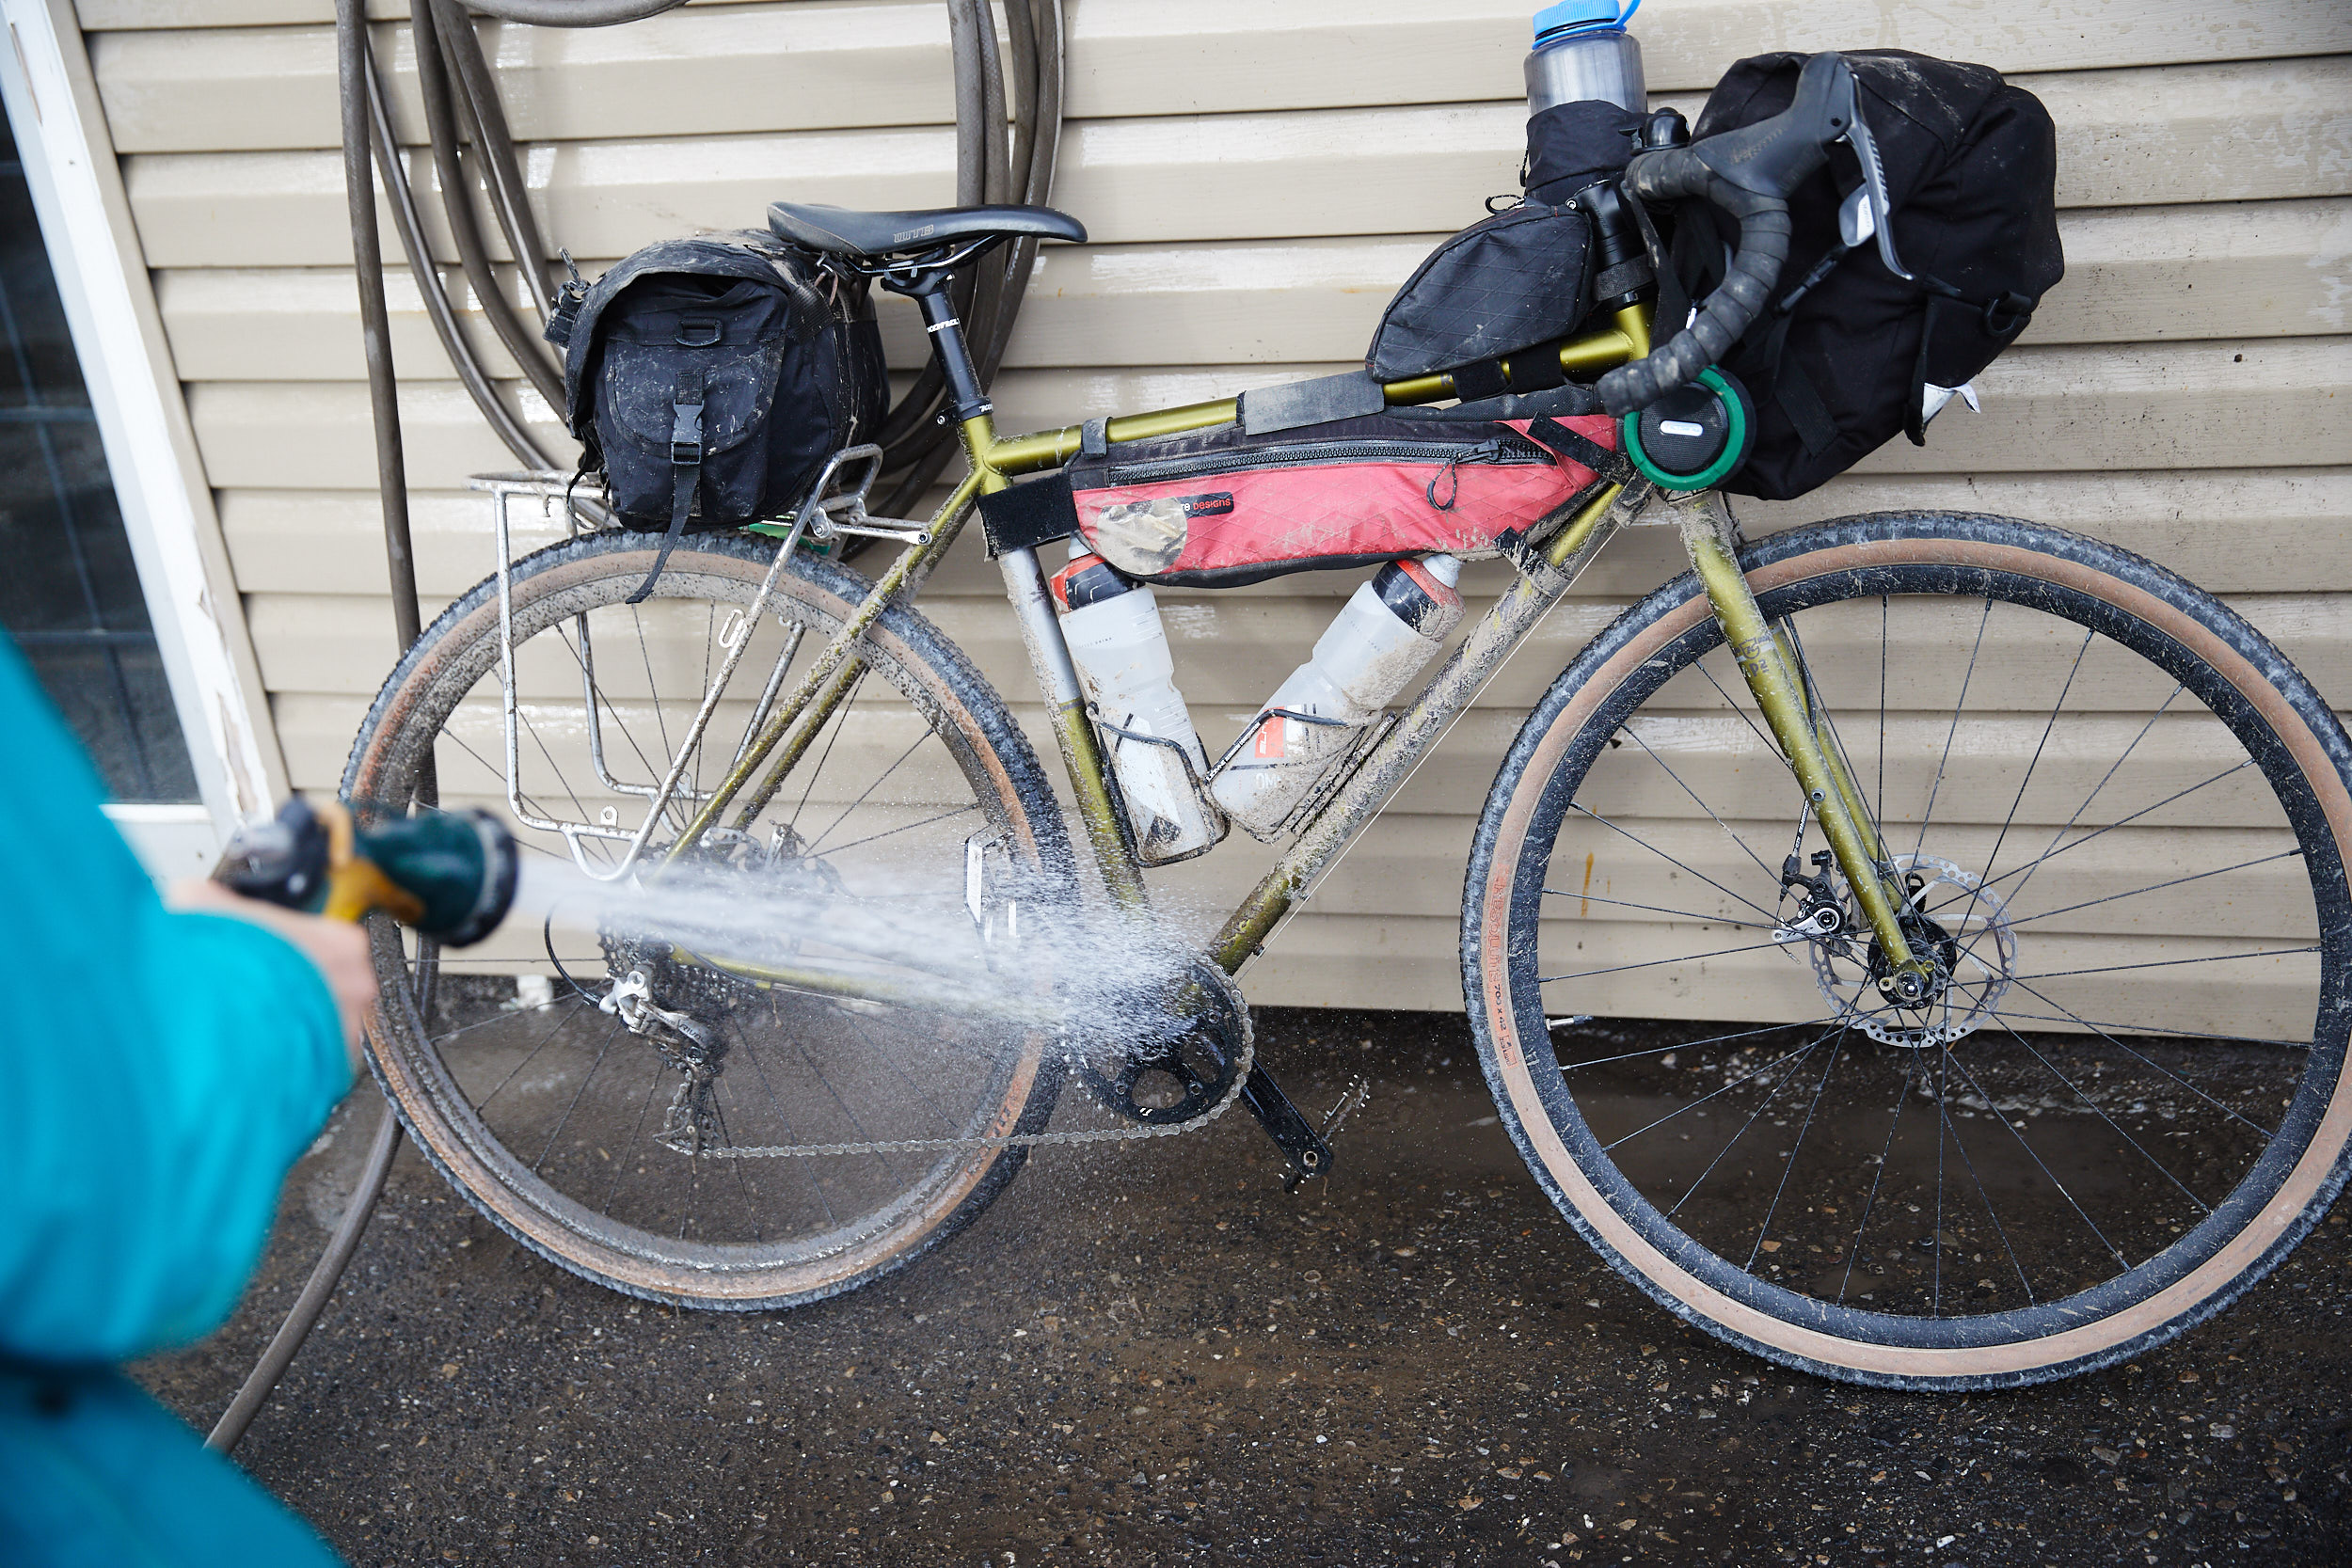 Thankfully we had an opportunity to wash off the bikes and sleep in a motel so that we could dry off.